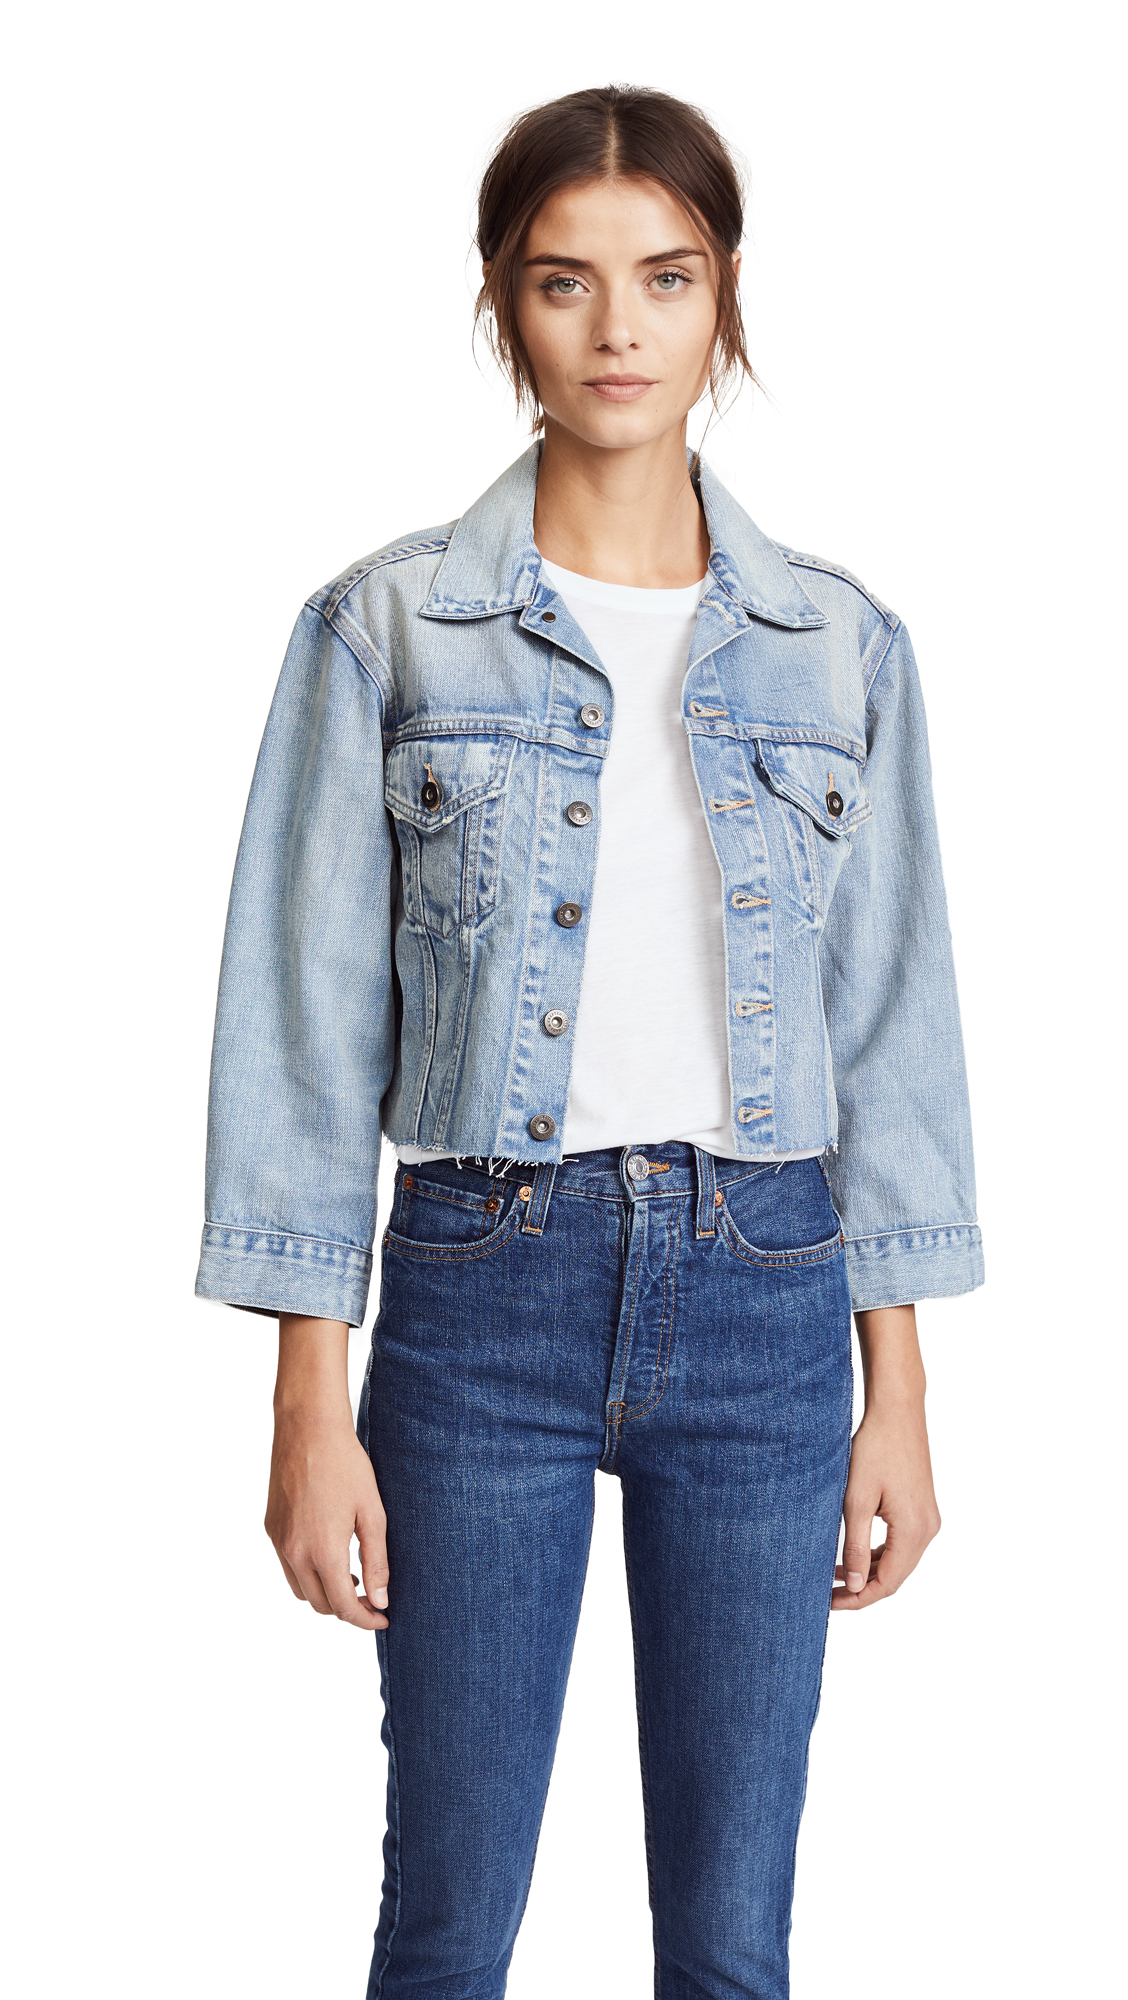 Levi's LMC x SHOPBOP Cropped BF Trucker Jacket In Salt Water Blue